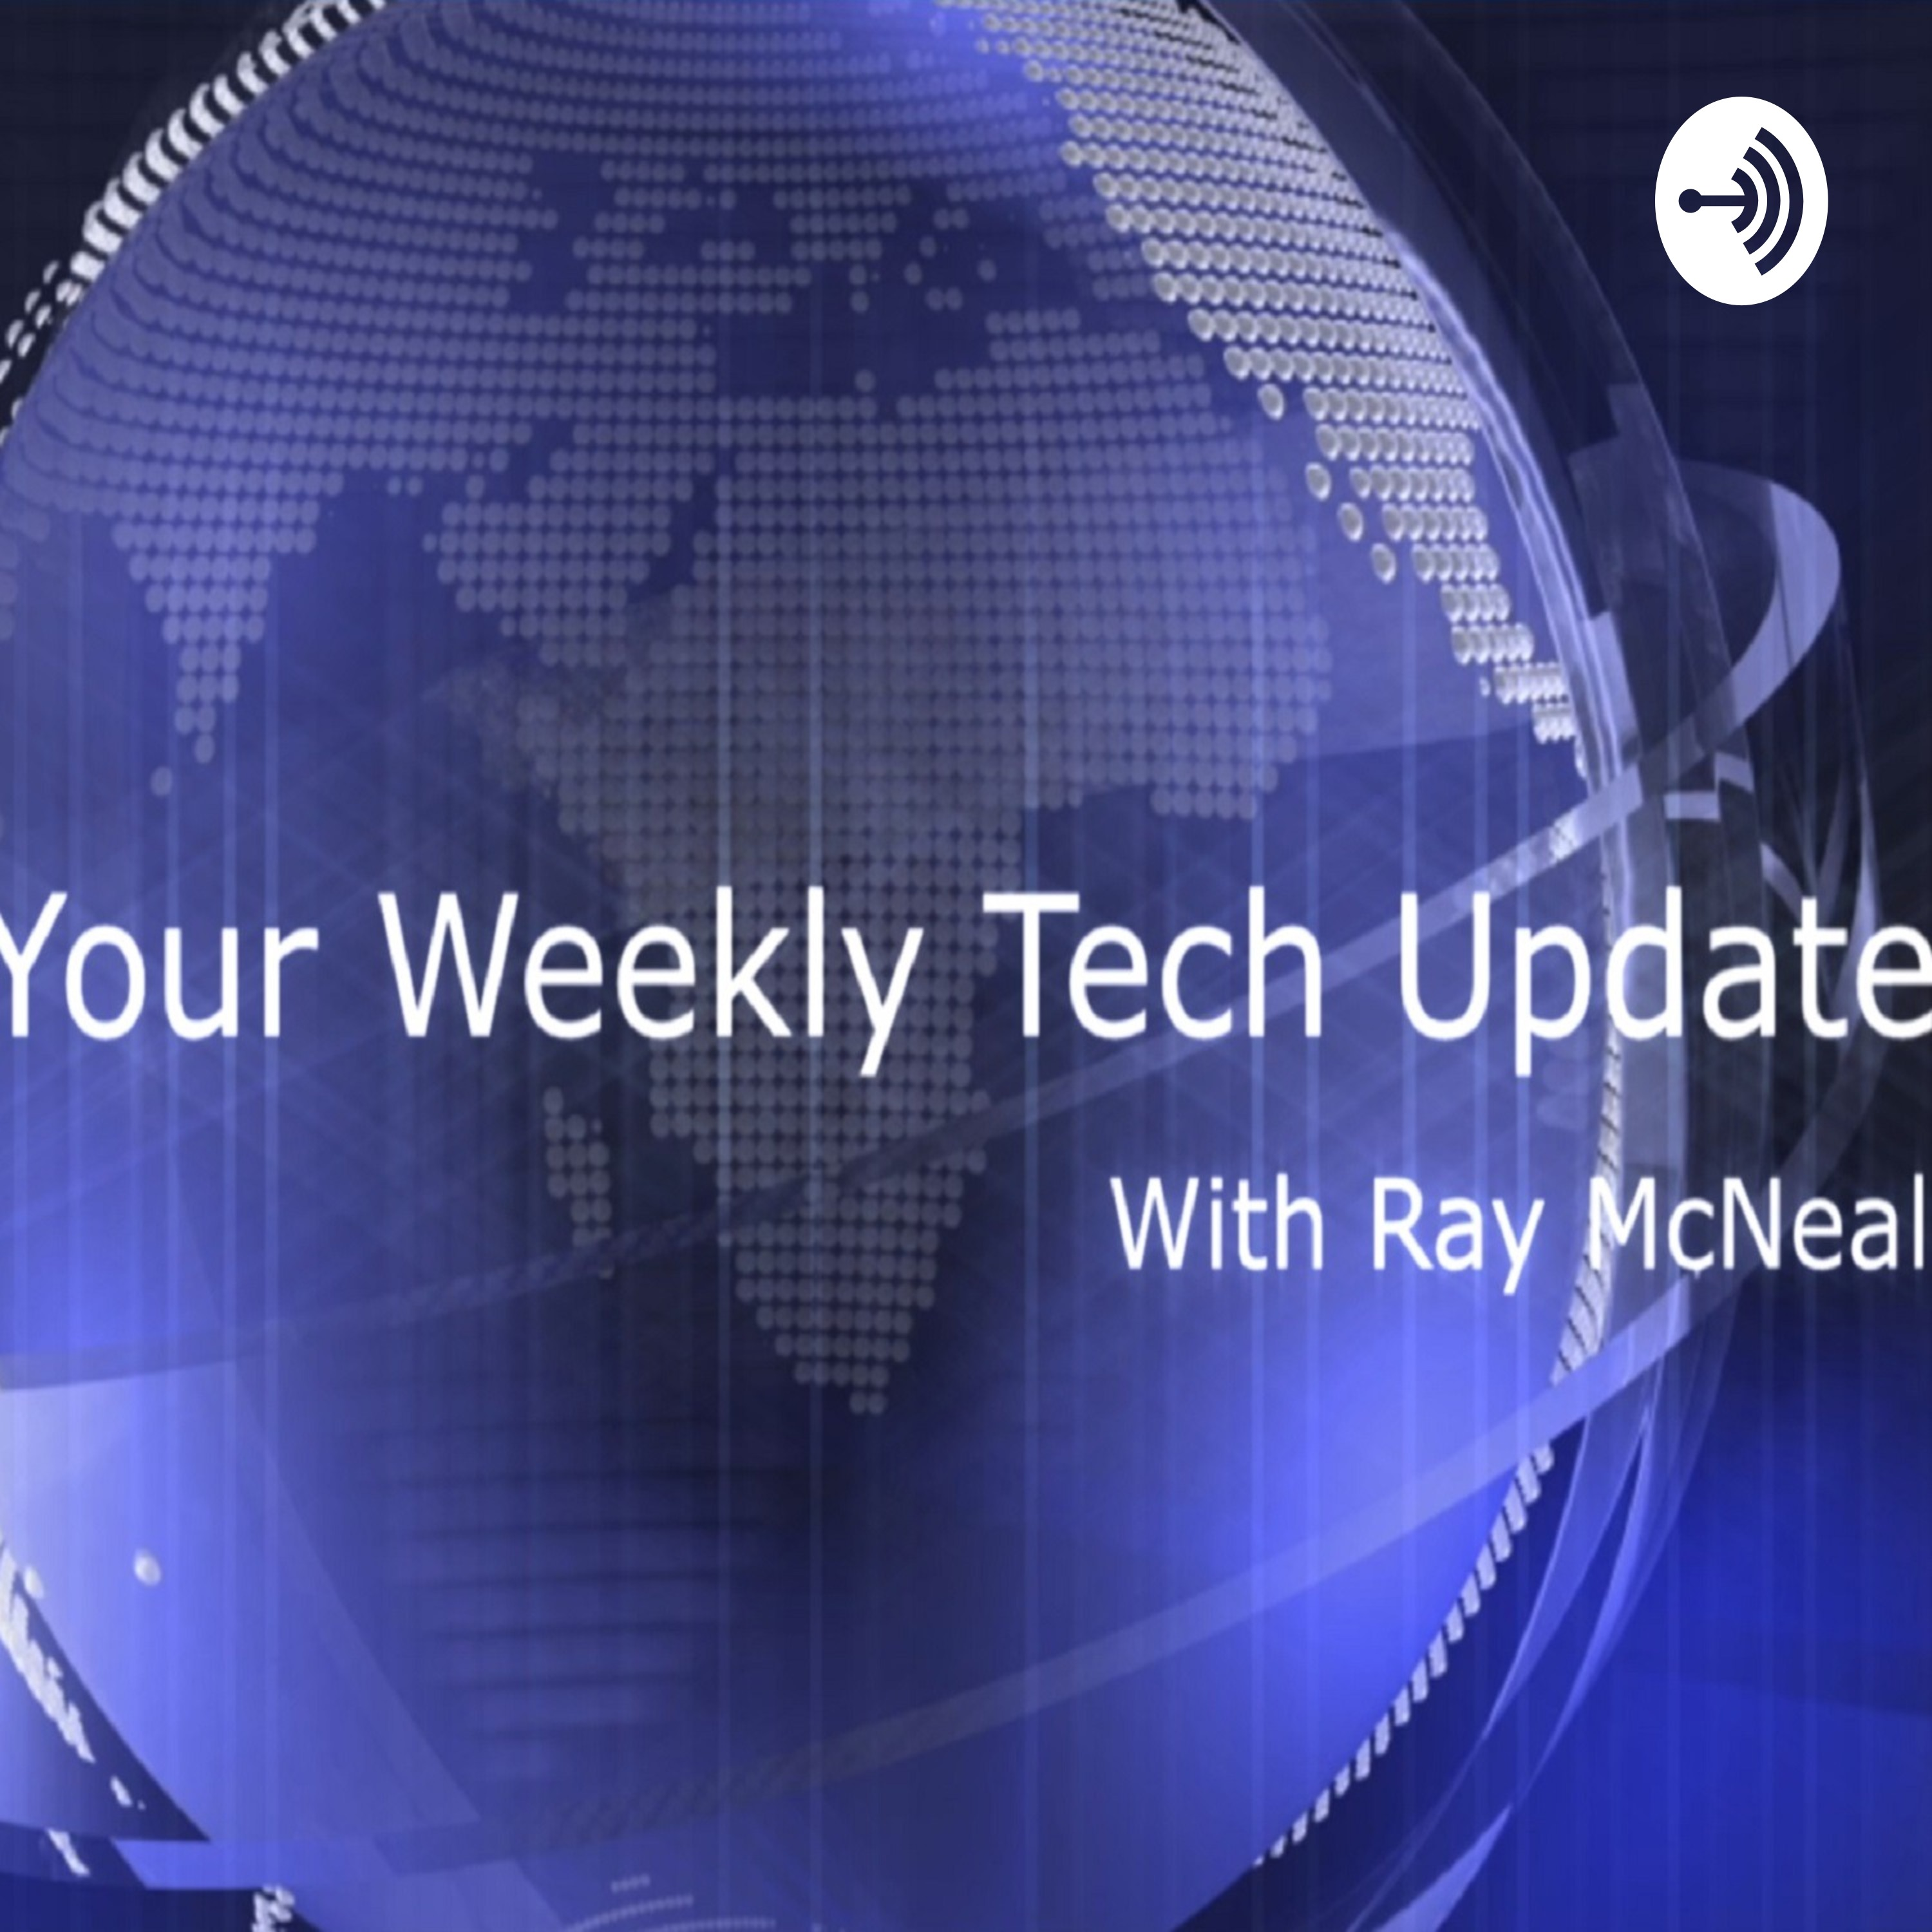 Your Weekly Tech Update with Ray McNeal (audio podcast)